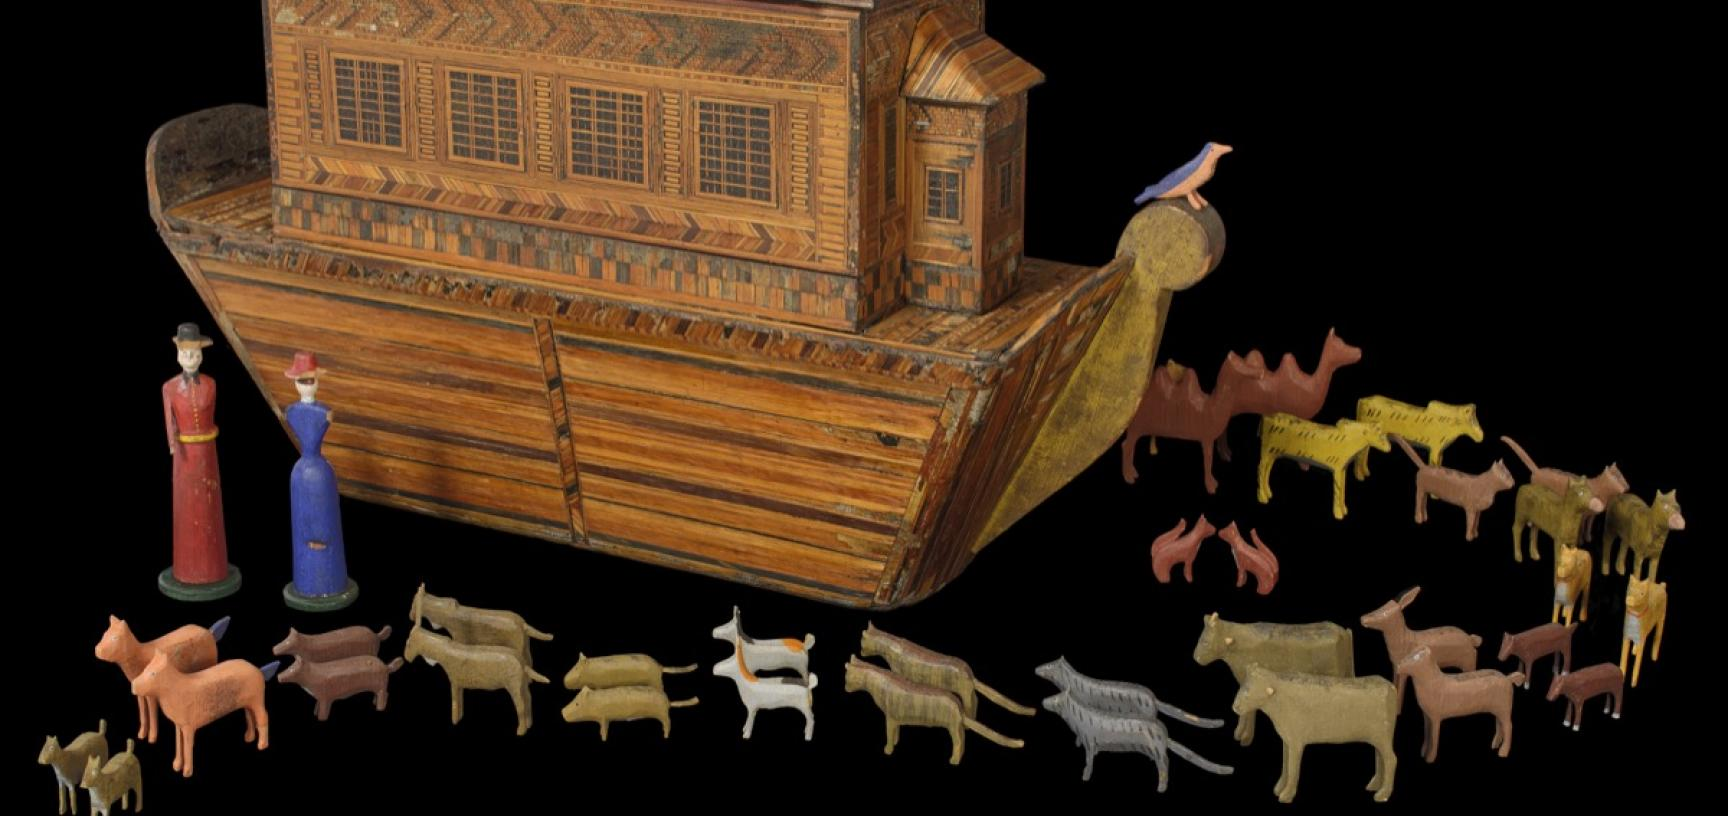 Wooden boat with animals in pairs and two human figurines